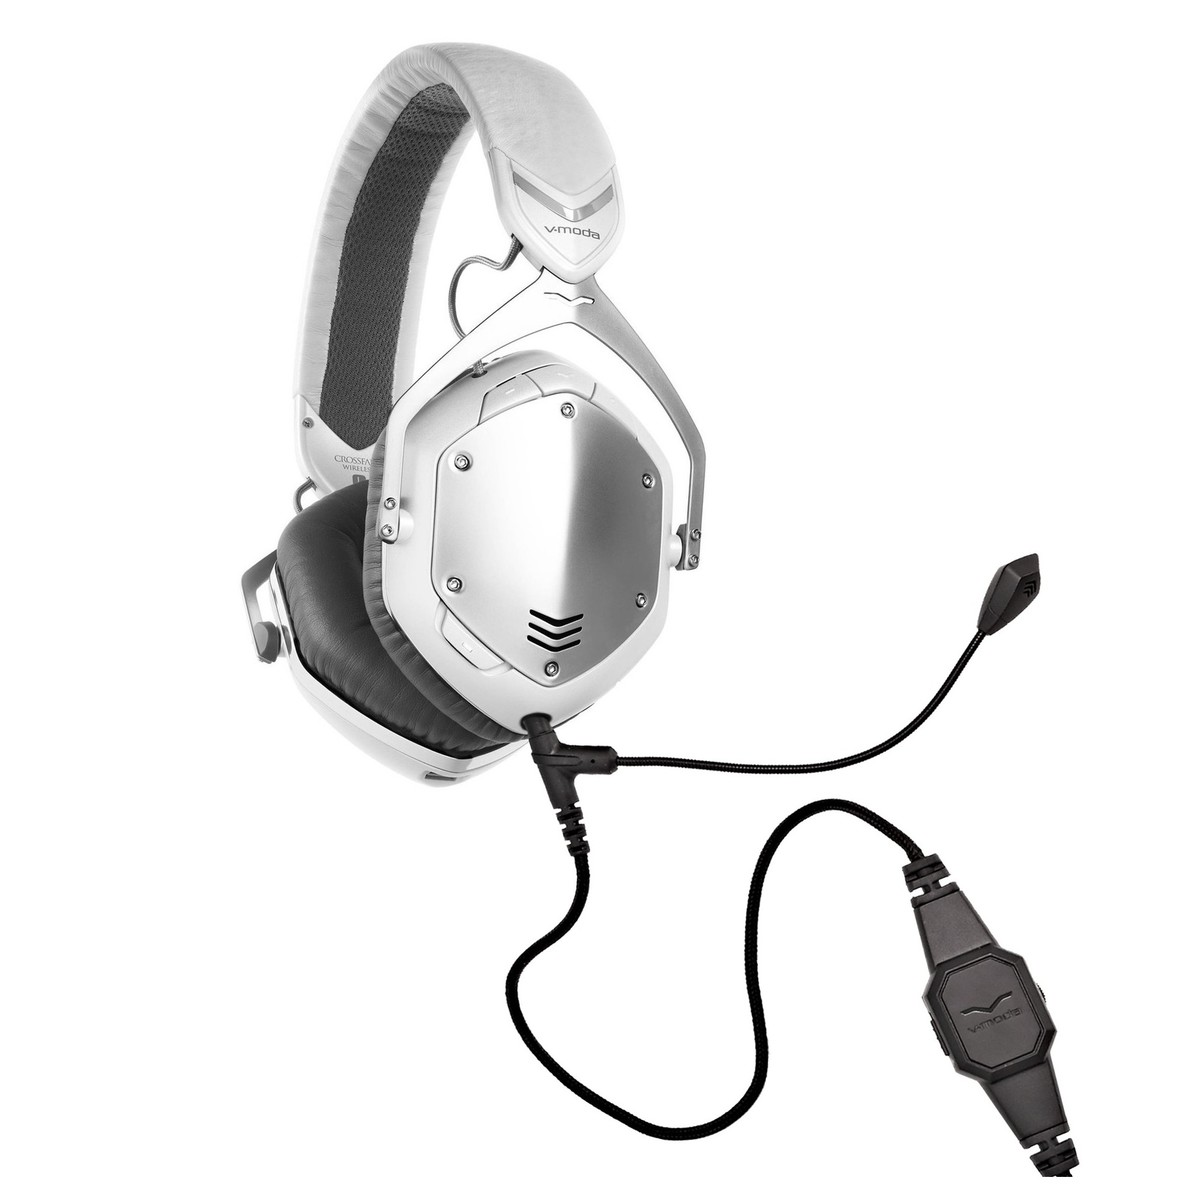 V Moda Crossfade Wireless Gaming Headset White Silver At Gear4music